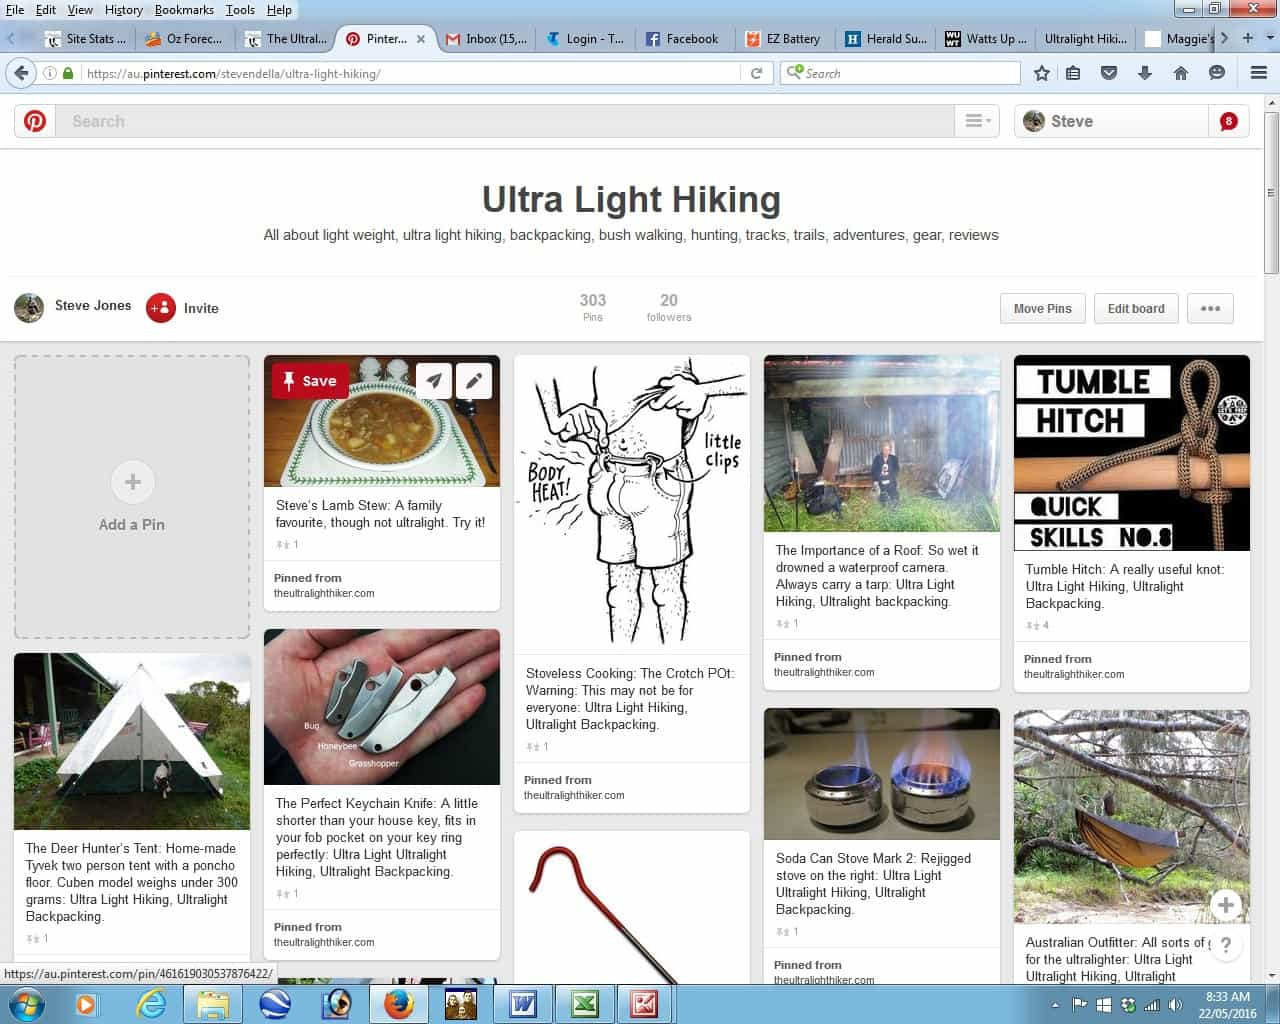 Ultralight Hiker on Pinterest: